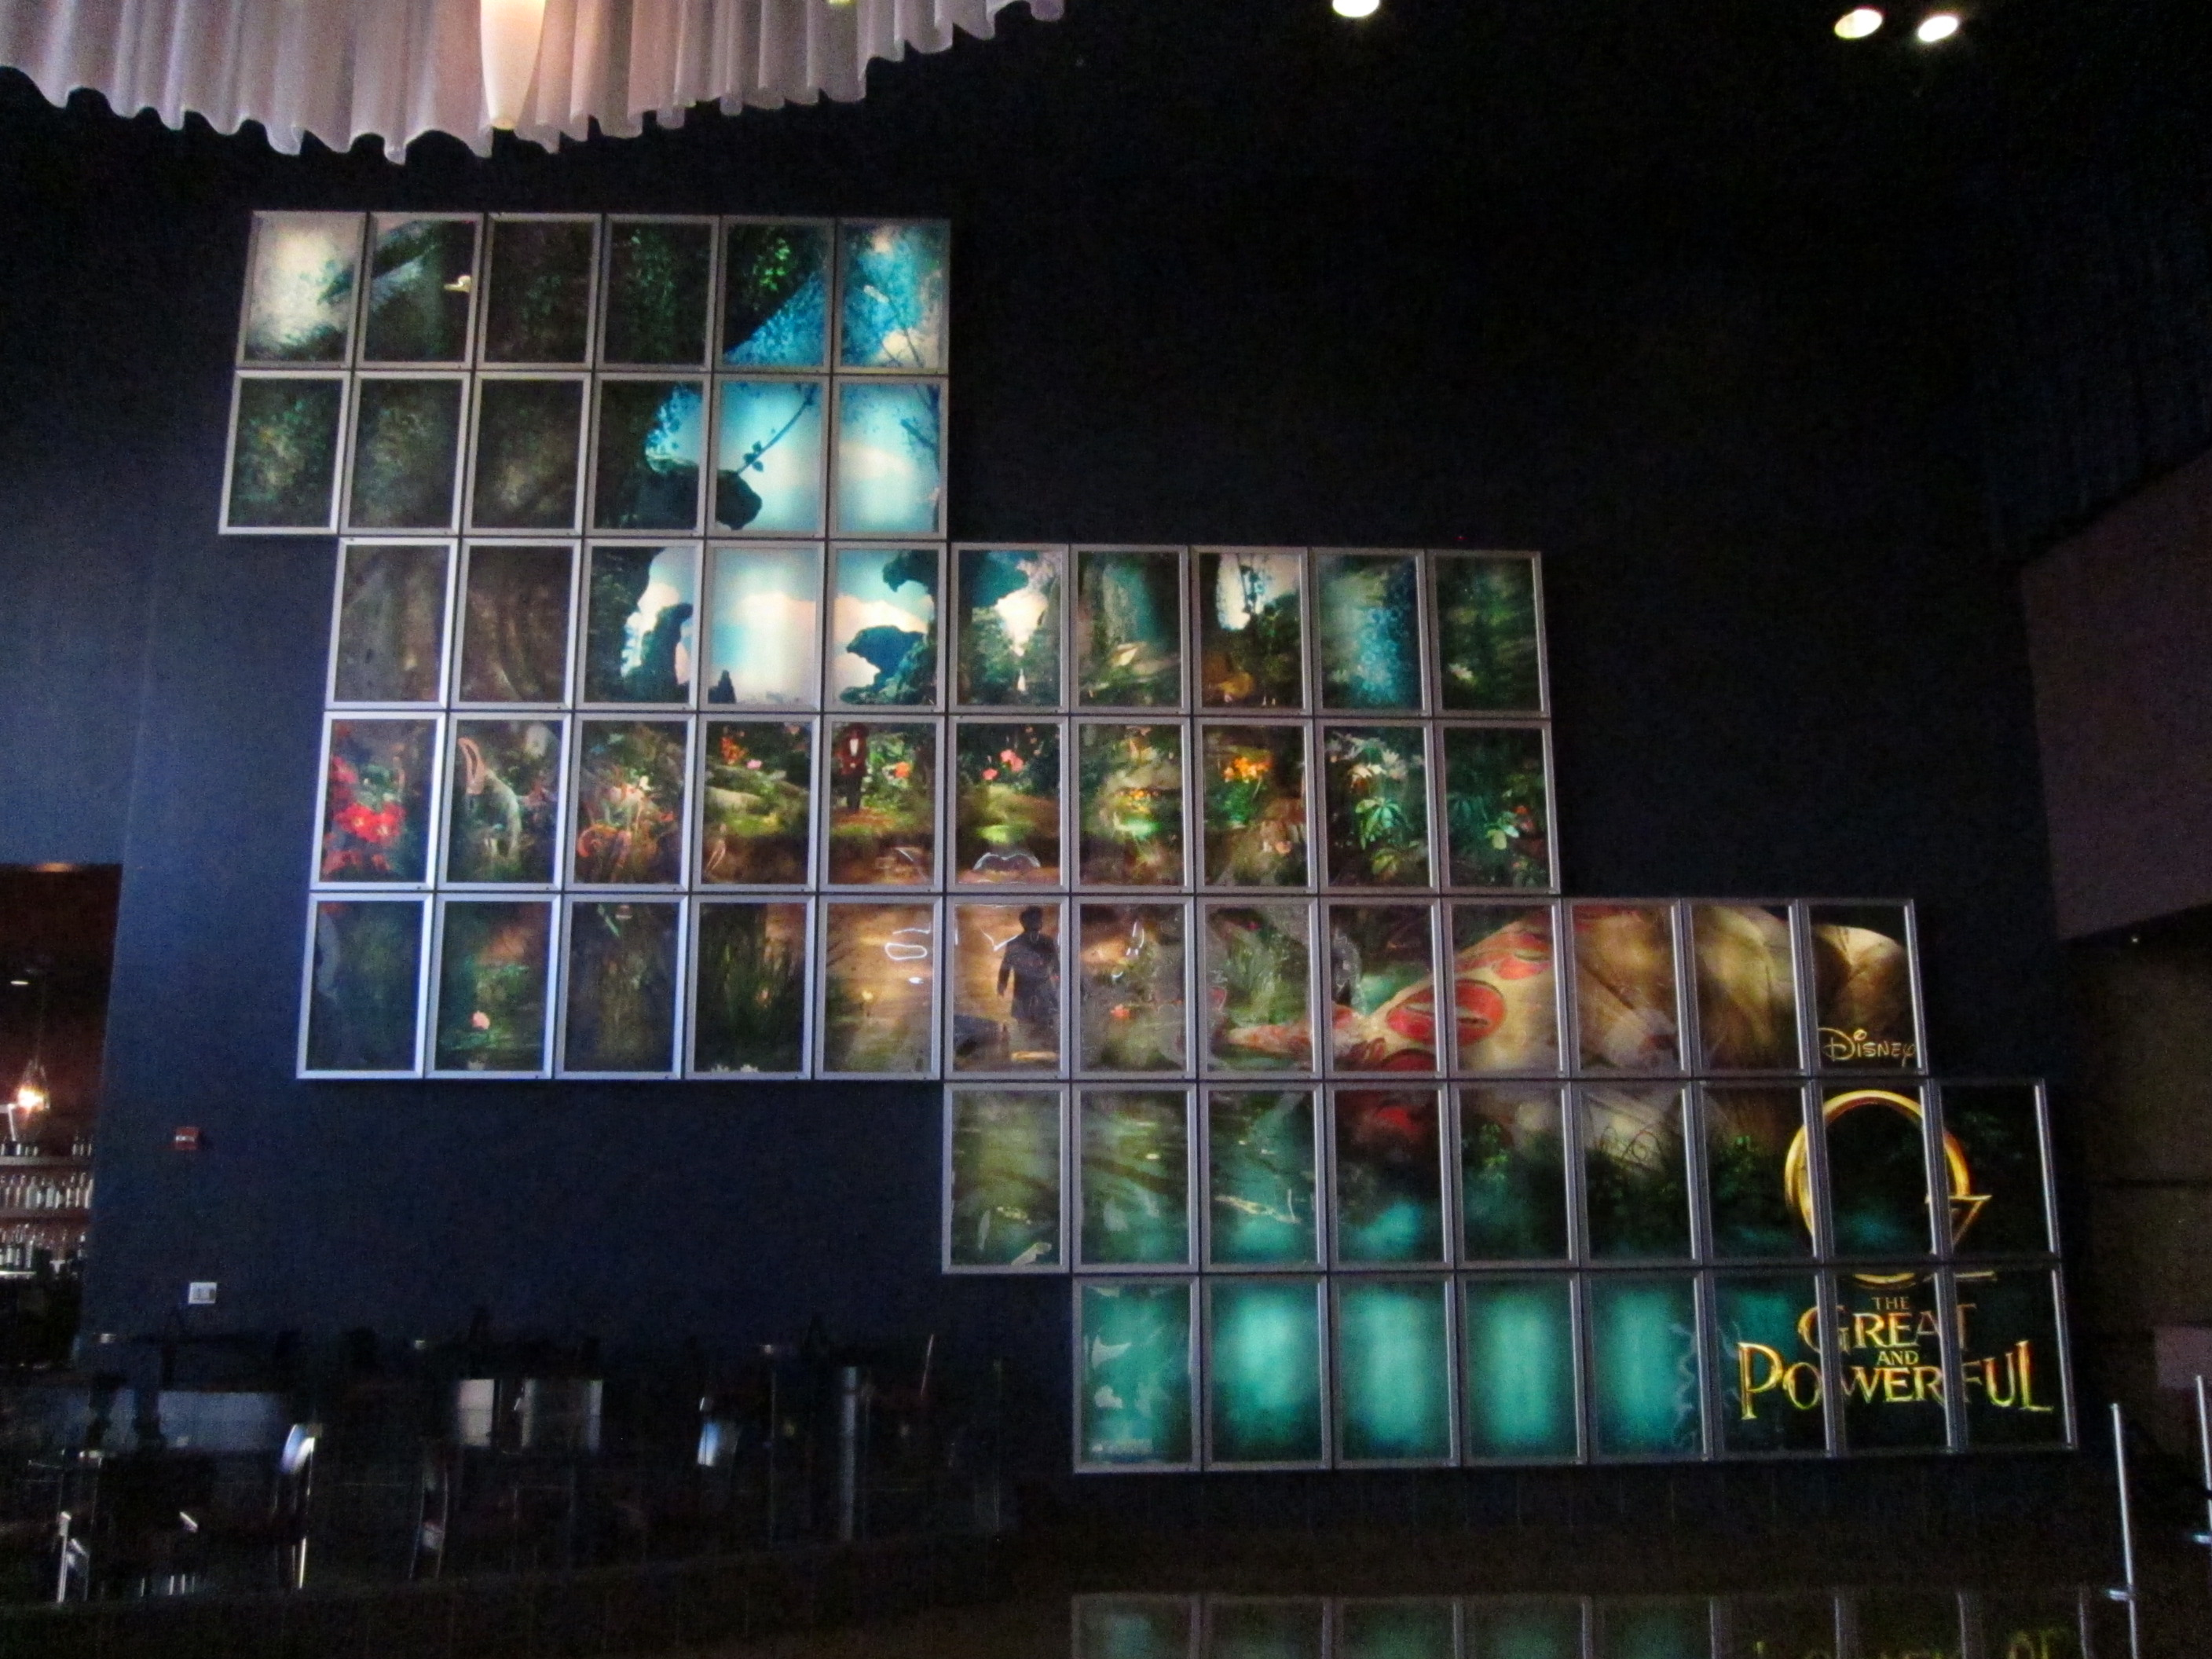 Backlit wall for Disney's OZ THE GREAT AND POWERFUL at the ArcLight Pasadena.